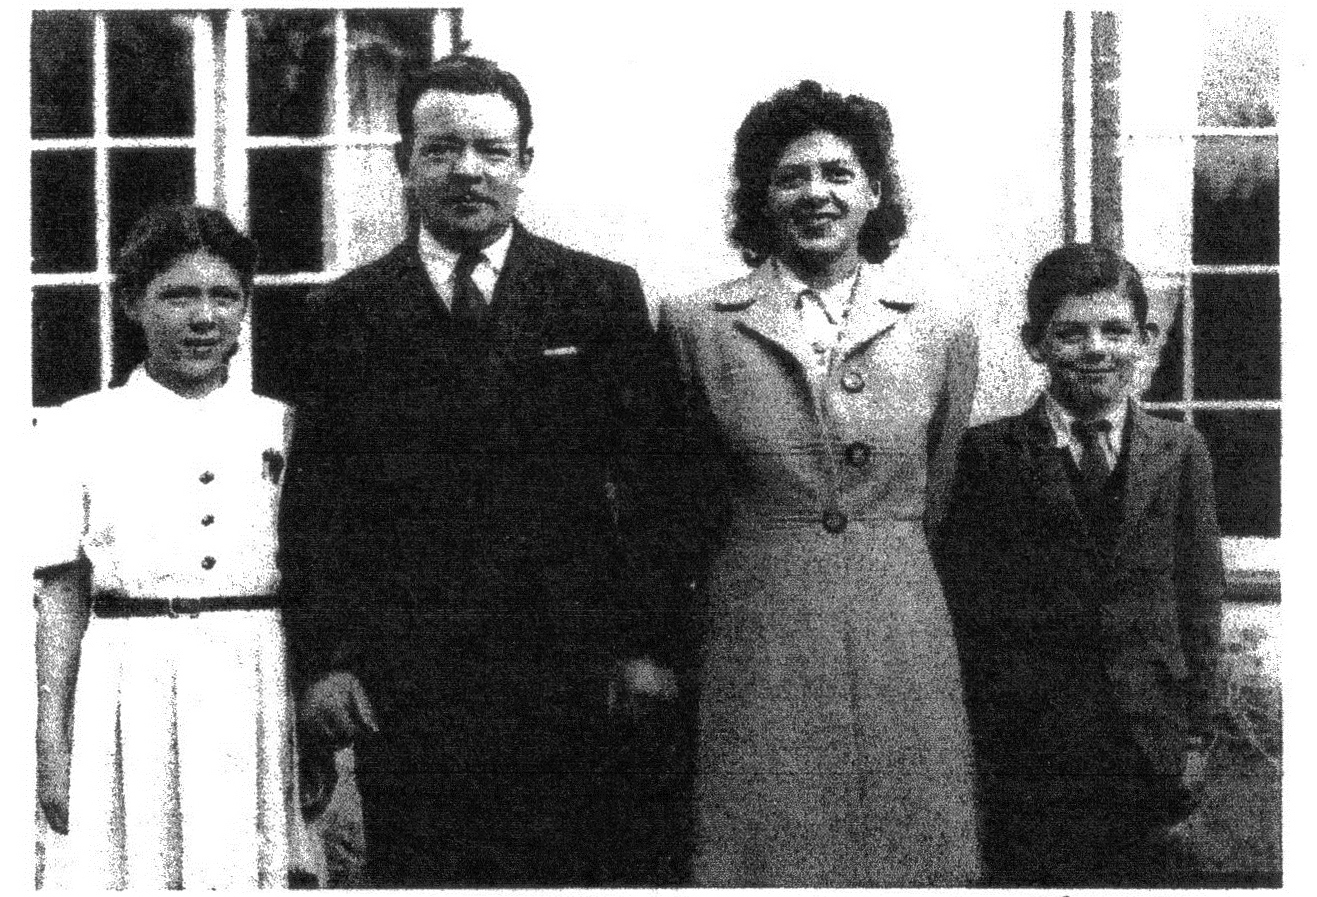 Thomas family, Wenallt Road, Rhiwbina